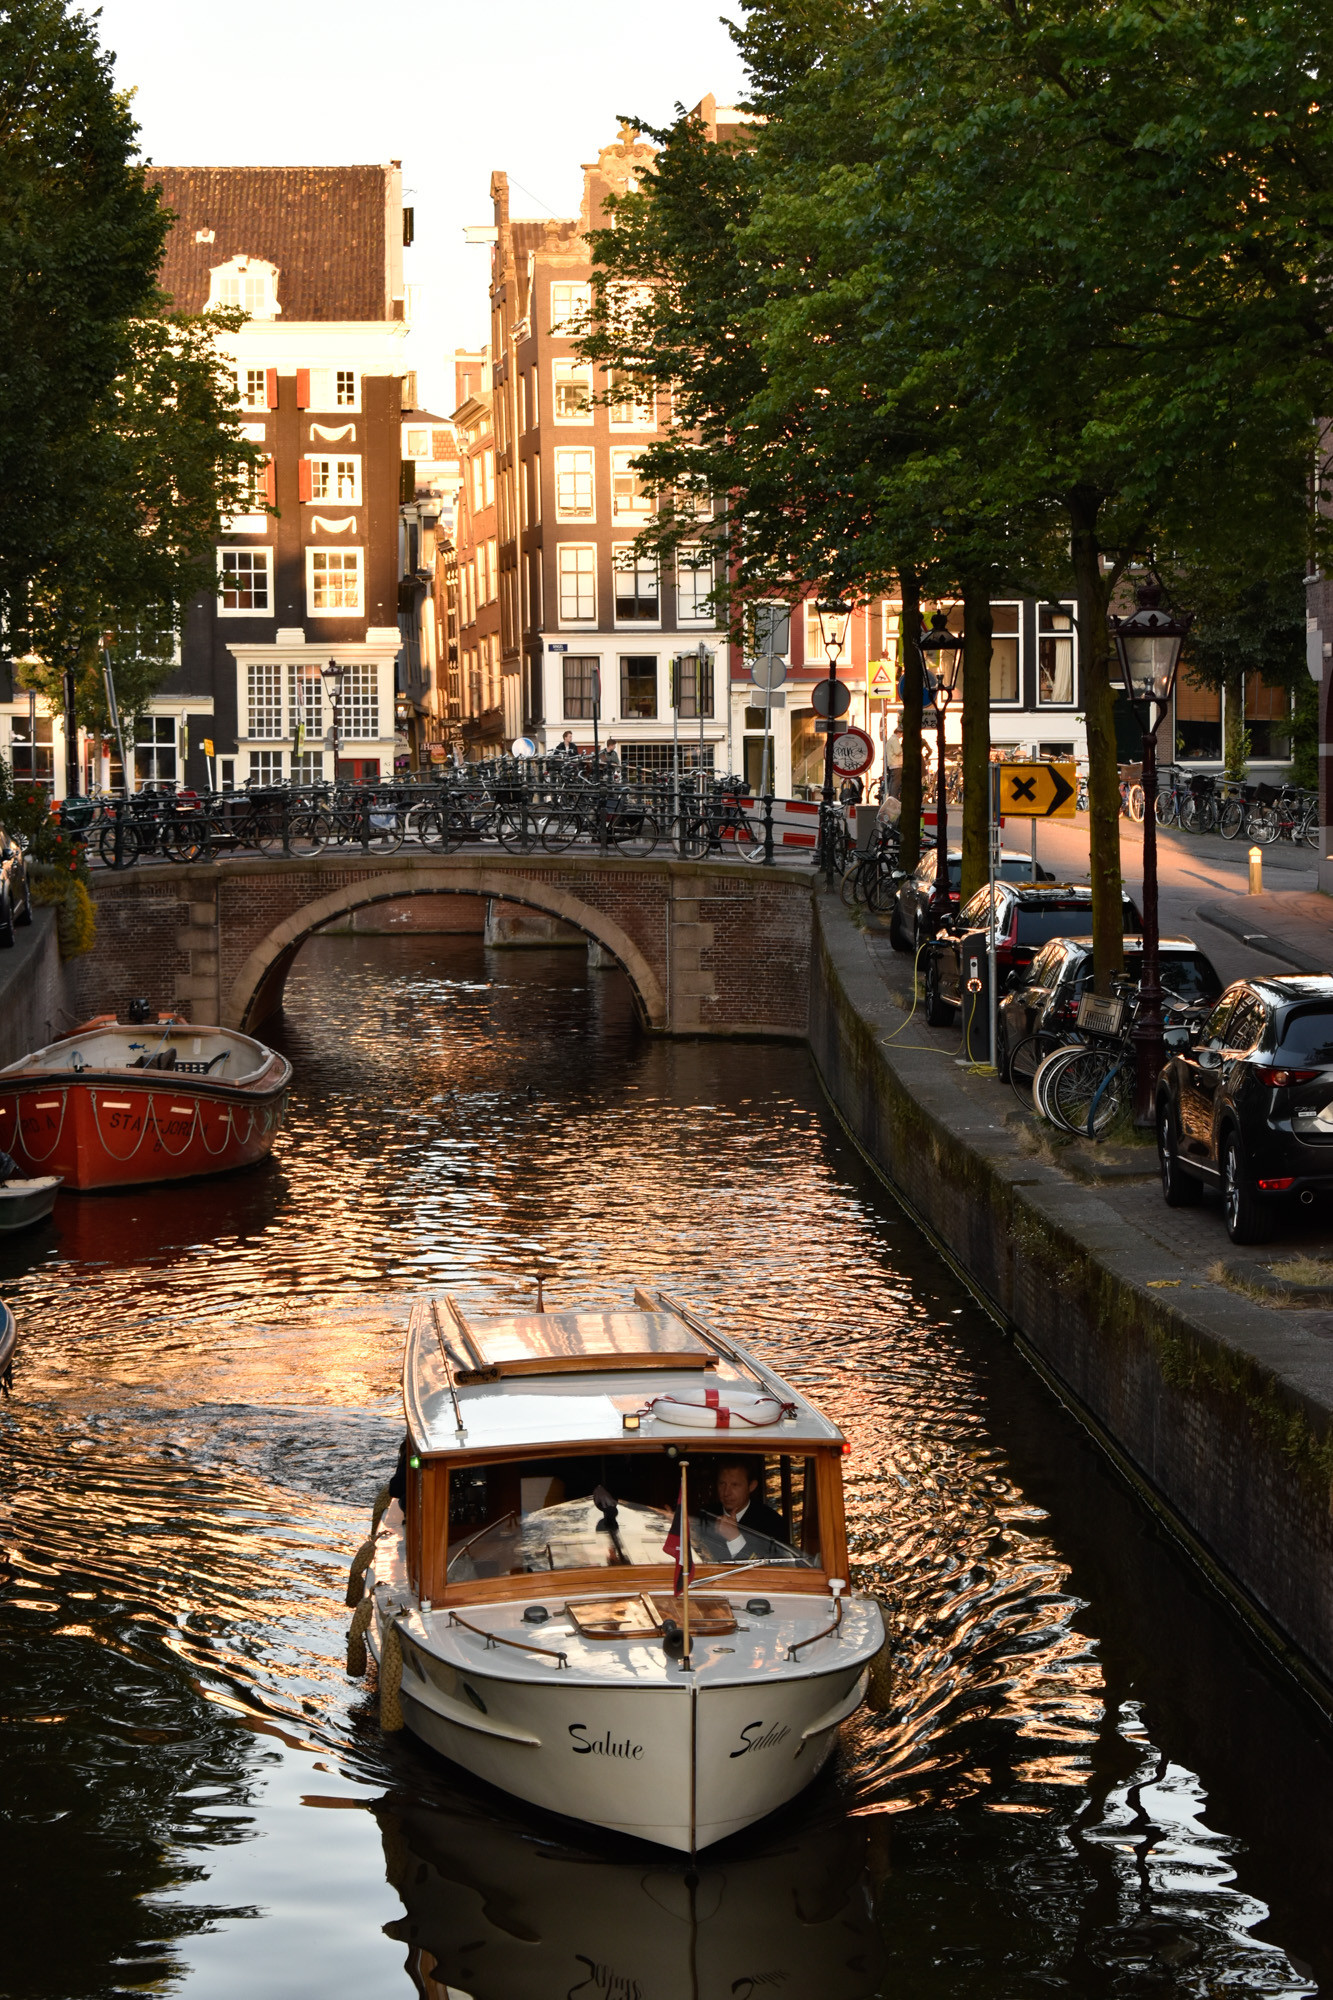 Amsterdam photo tours boat in canal